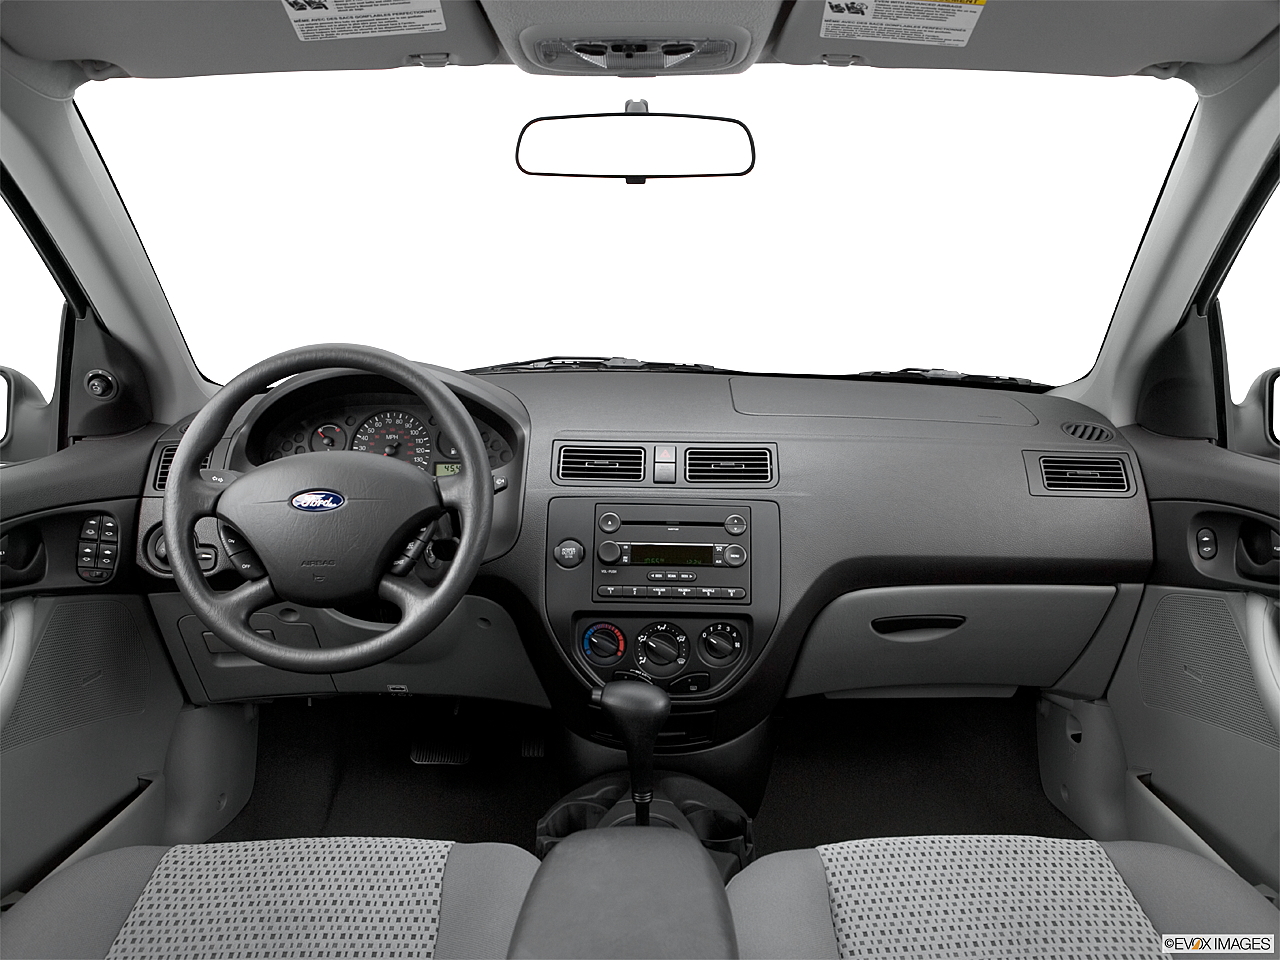 2006 ford focus zx4 ses 4dr sedan research groovecar for Ford focus 2006 interieur